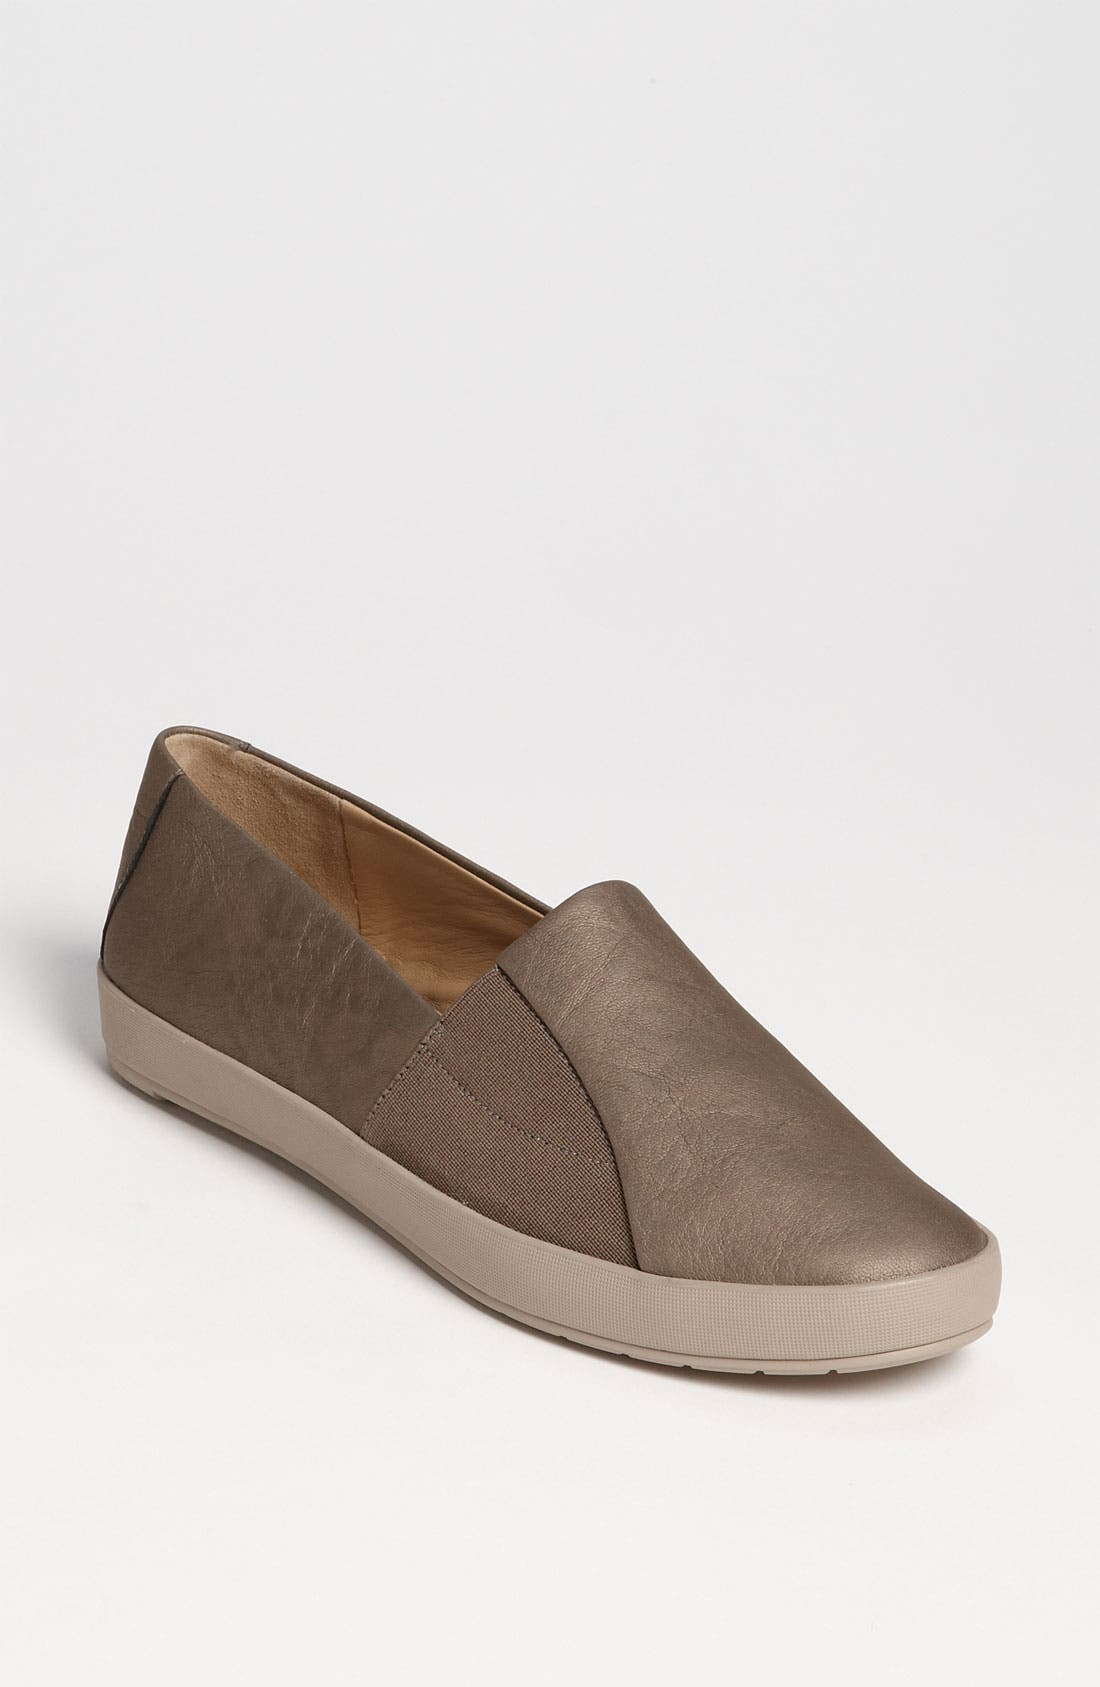 Main Image - Eileen Fisher 'Chase' Loafer